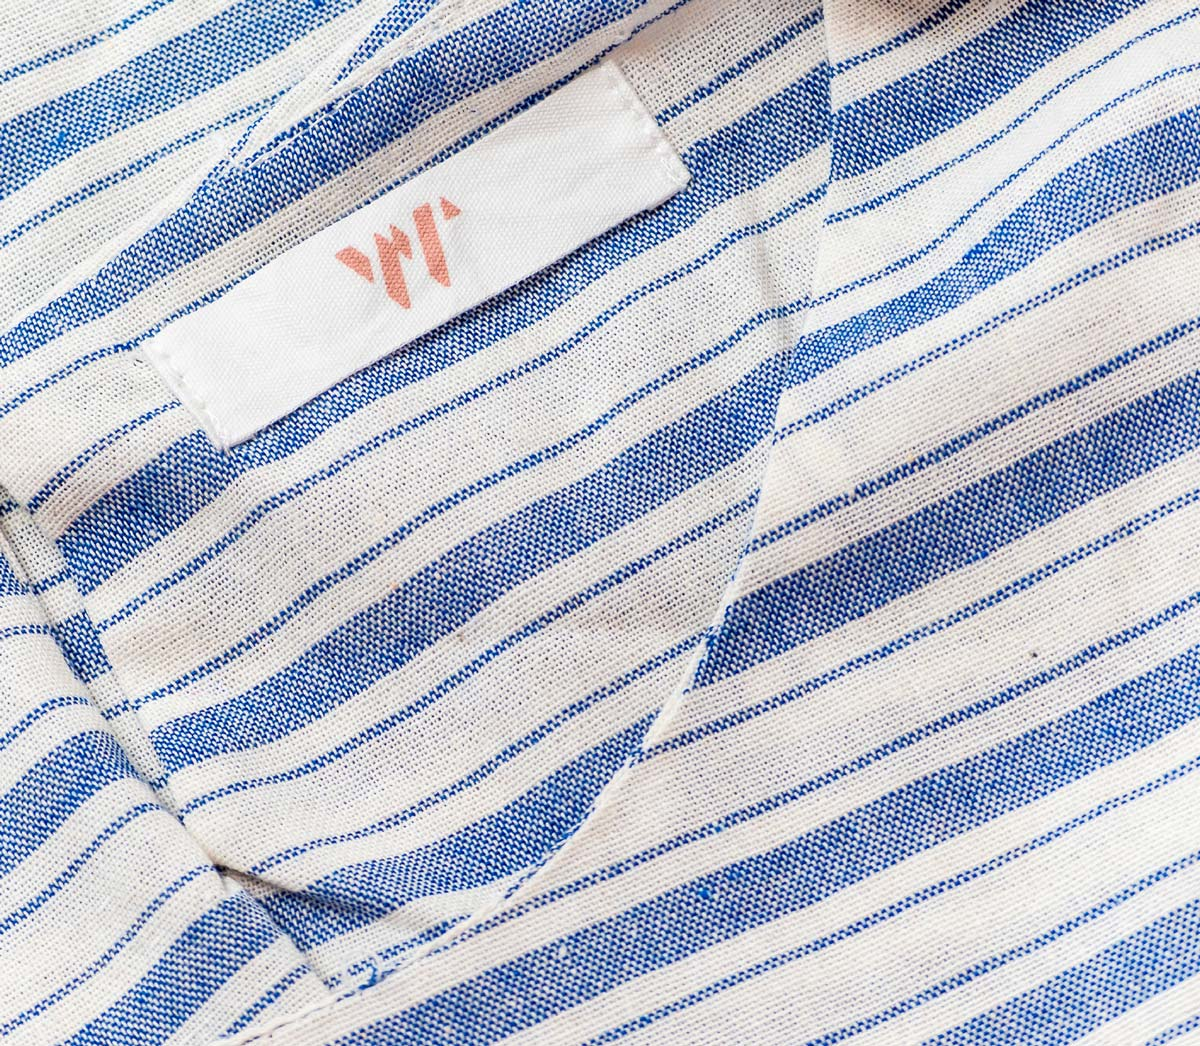 W-apparel_cloth_brand_label_x